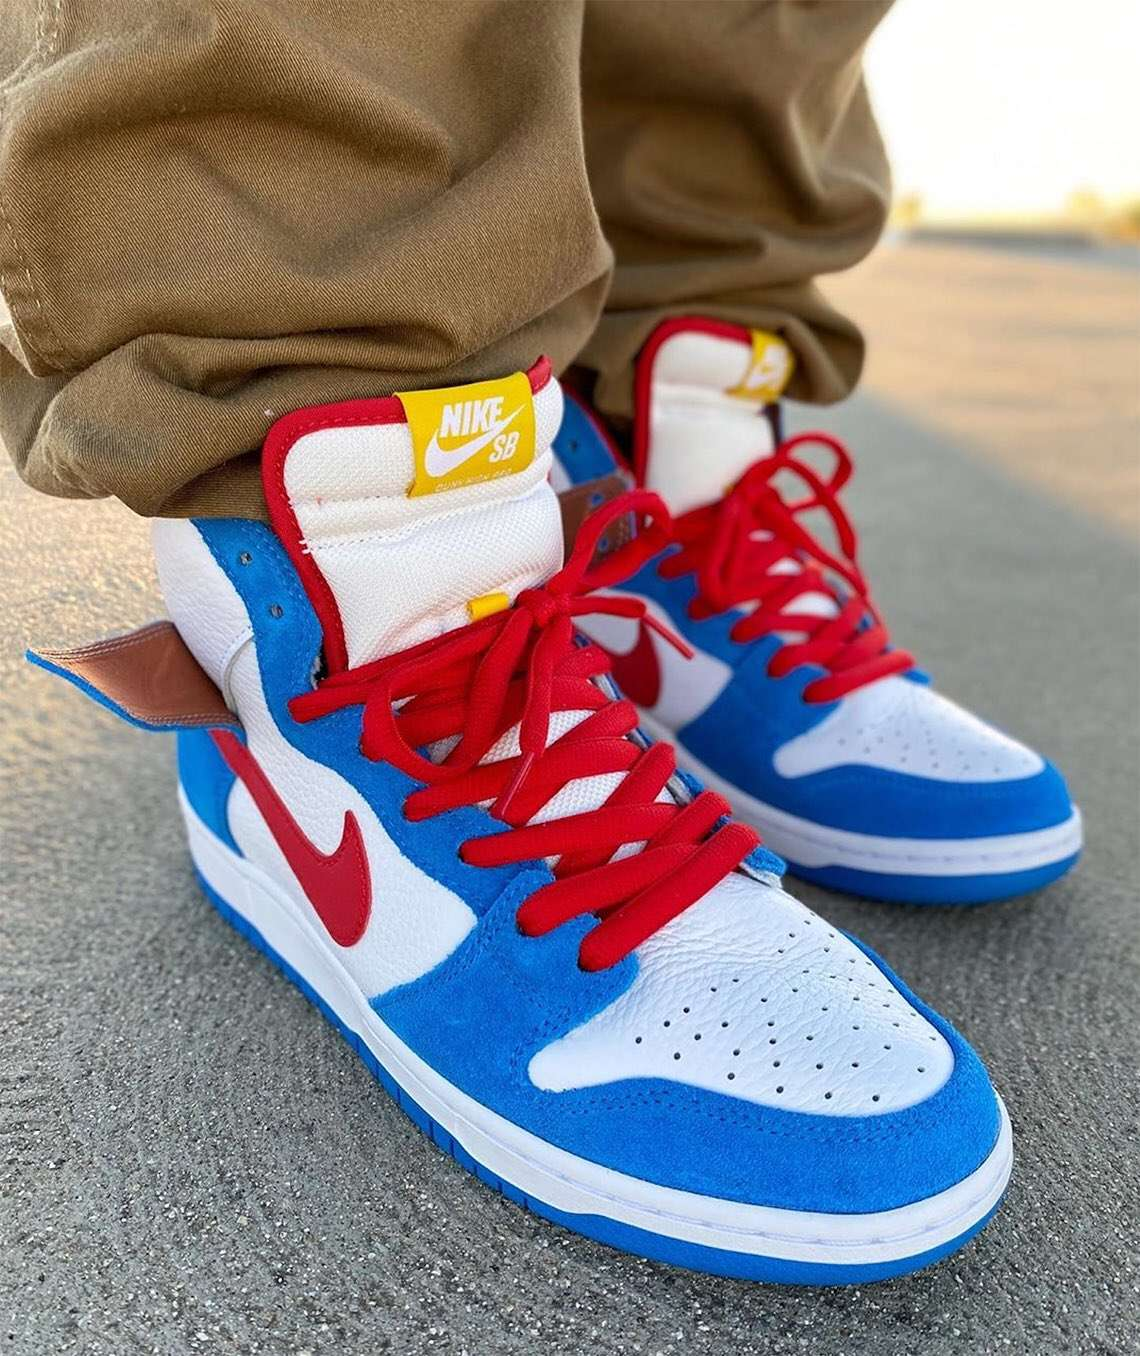 "nike sb dunk high ""doraemon"" - Nike SB Dunk High Doraemon CI2692 400 Release Date On Foot - Nike SB Dunk High ""Doraemon"""